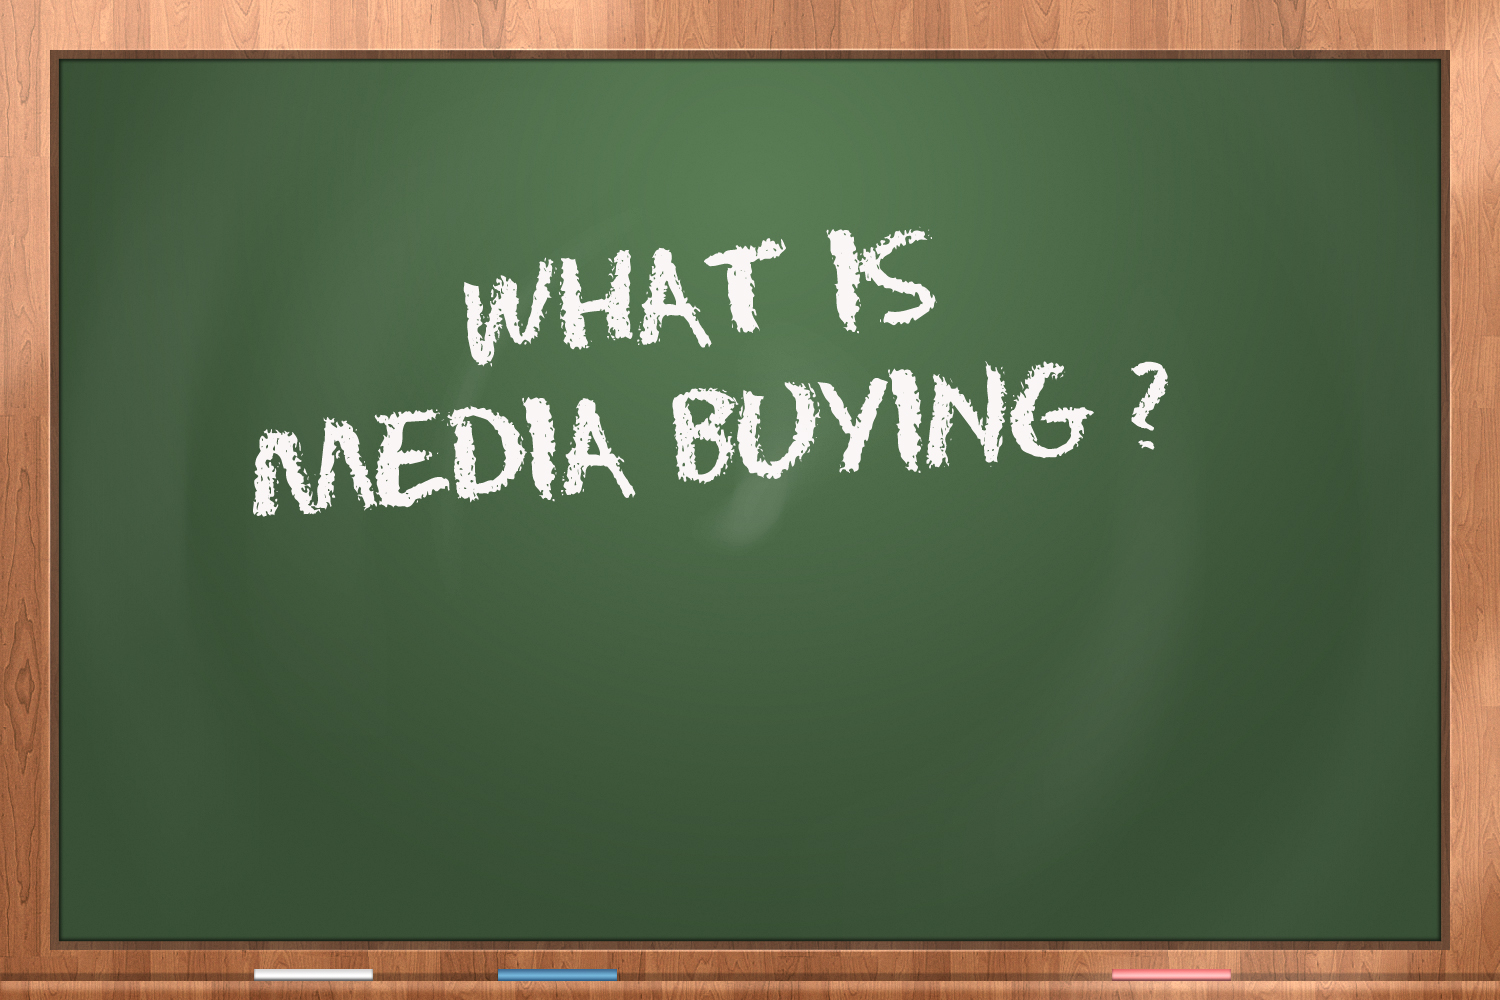 how does digital media buying work